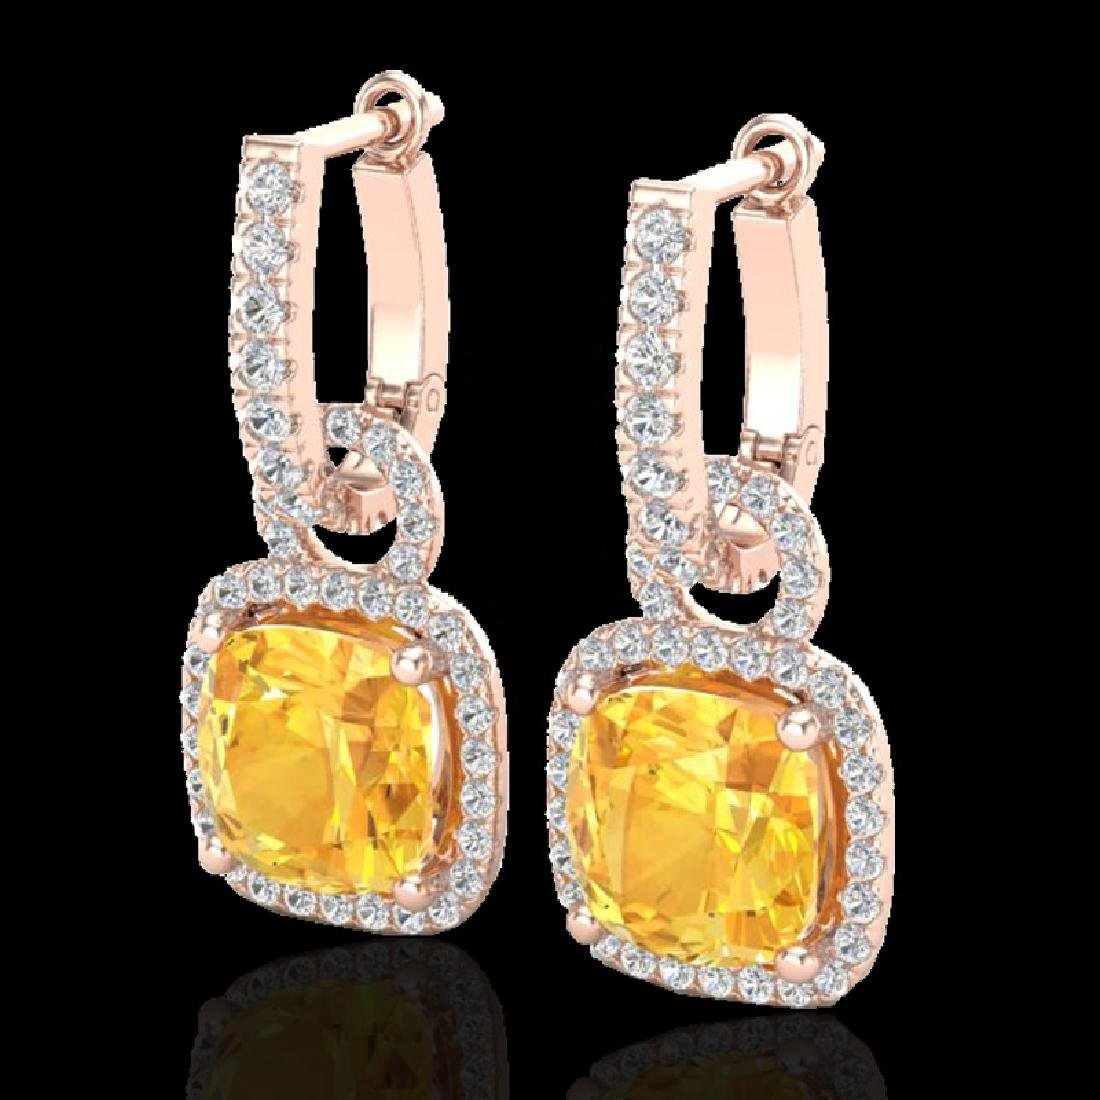 7 CTW Citrine & Micro Pave VS/SI Diamond Earrings 14K